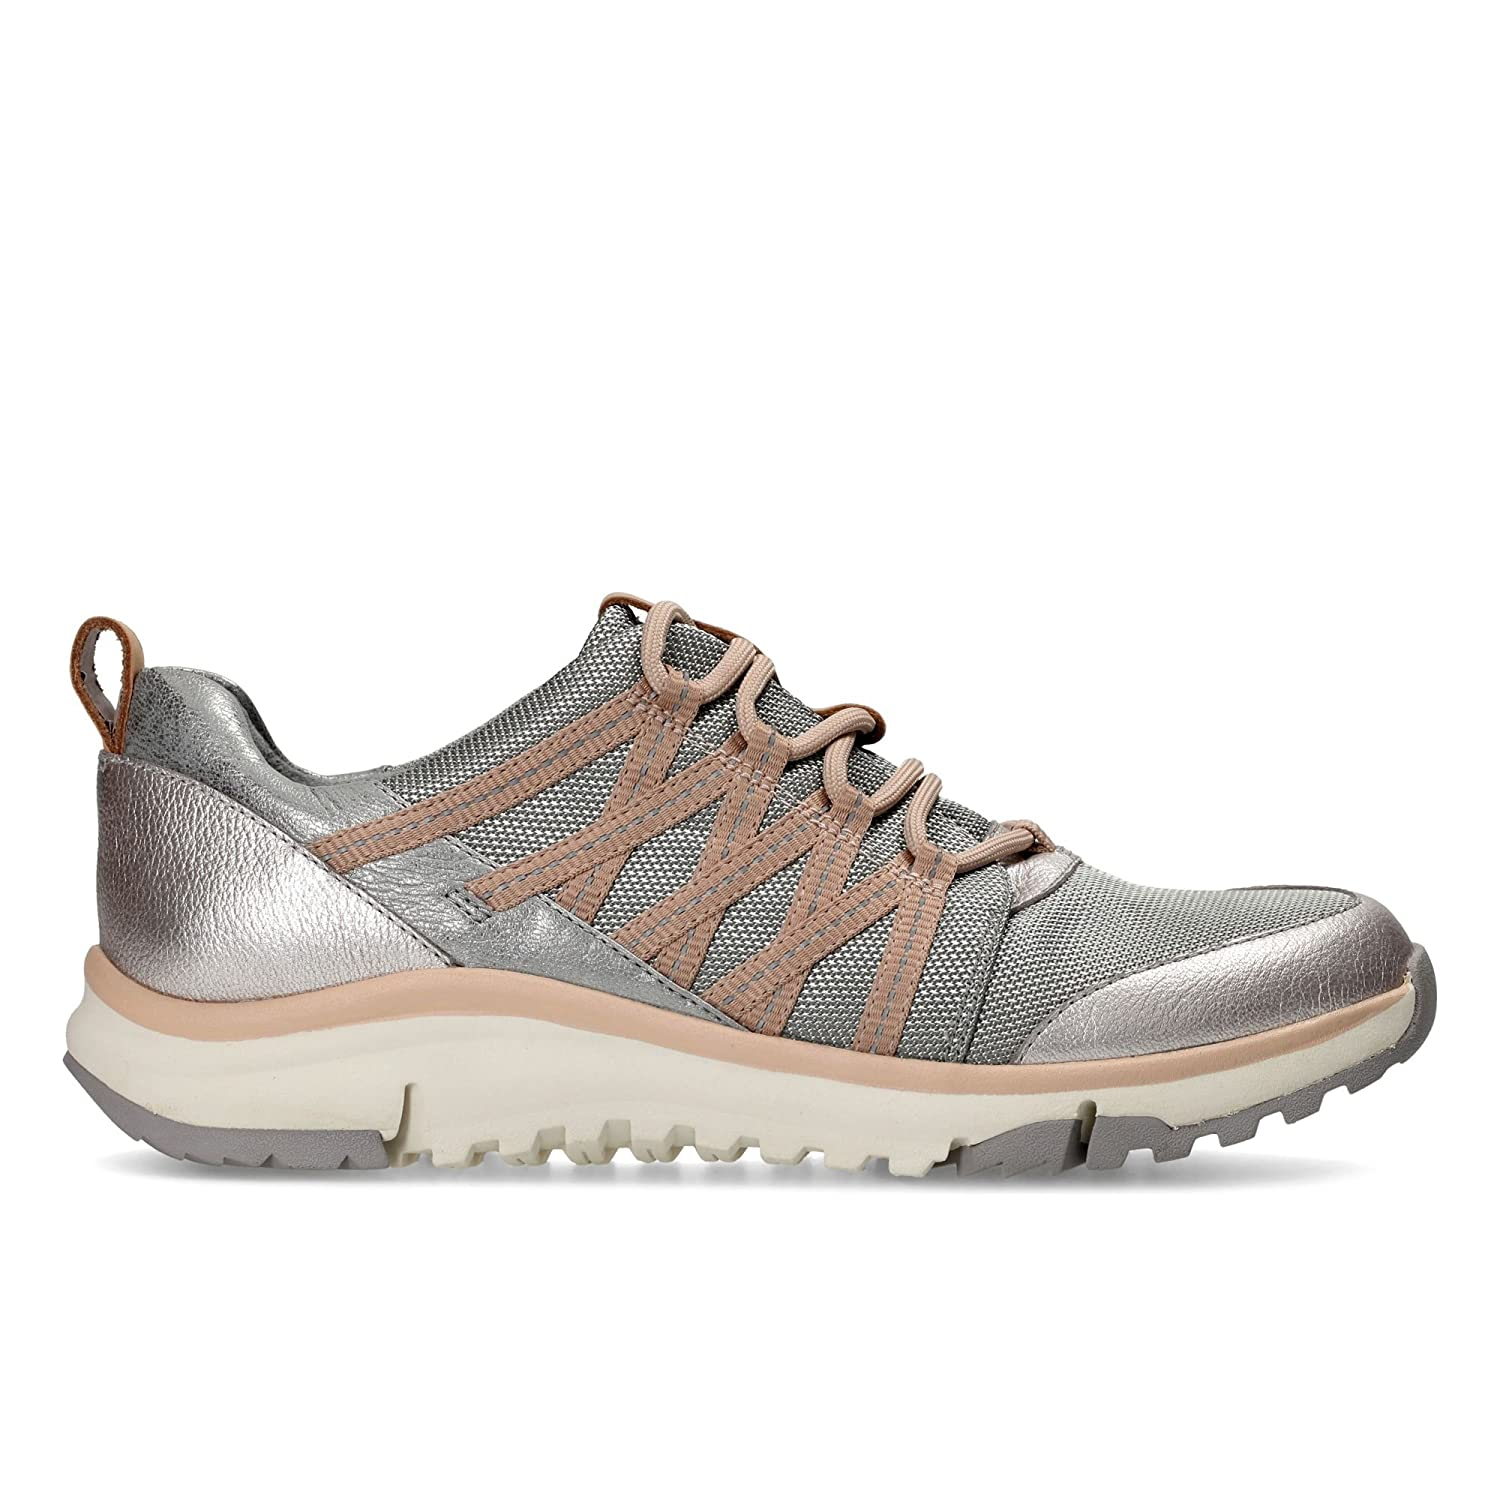 Entdecken schnüren in Factory Outlets Clarks Tri Trail Textile Shoes in Silver Combi